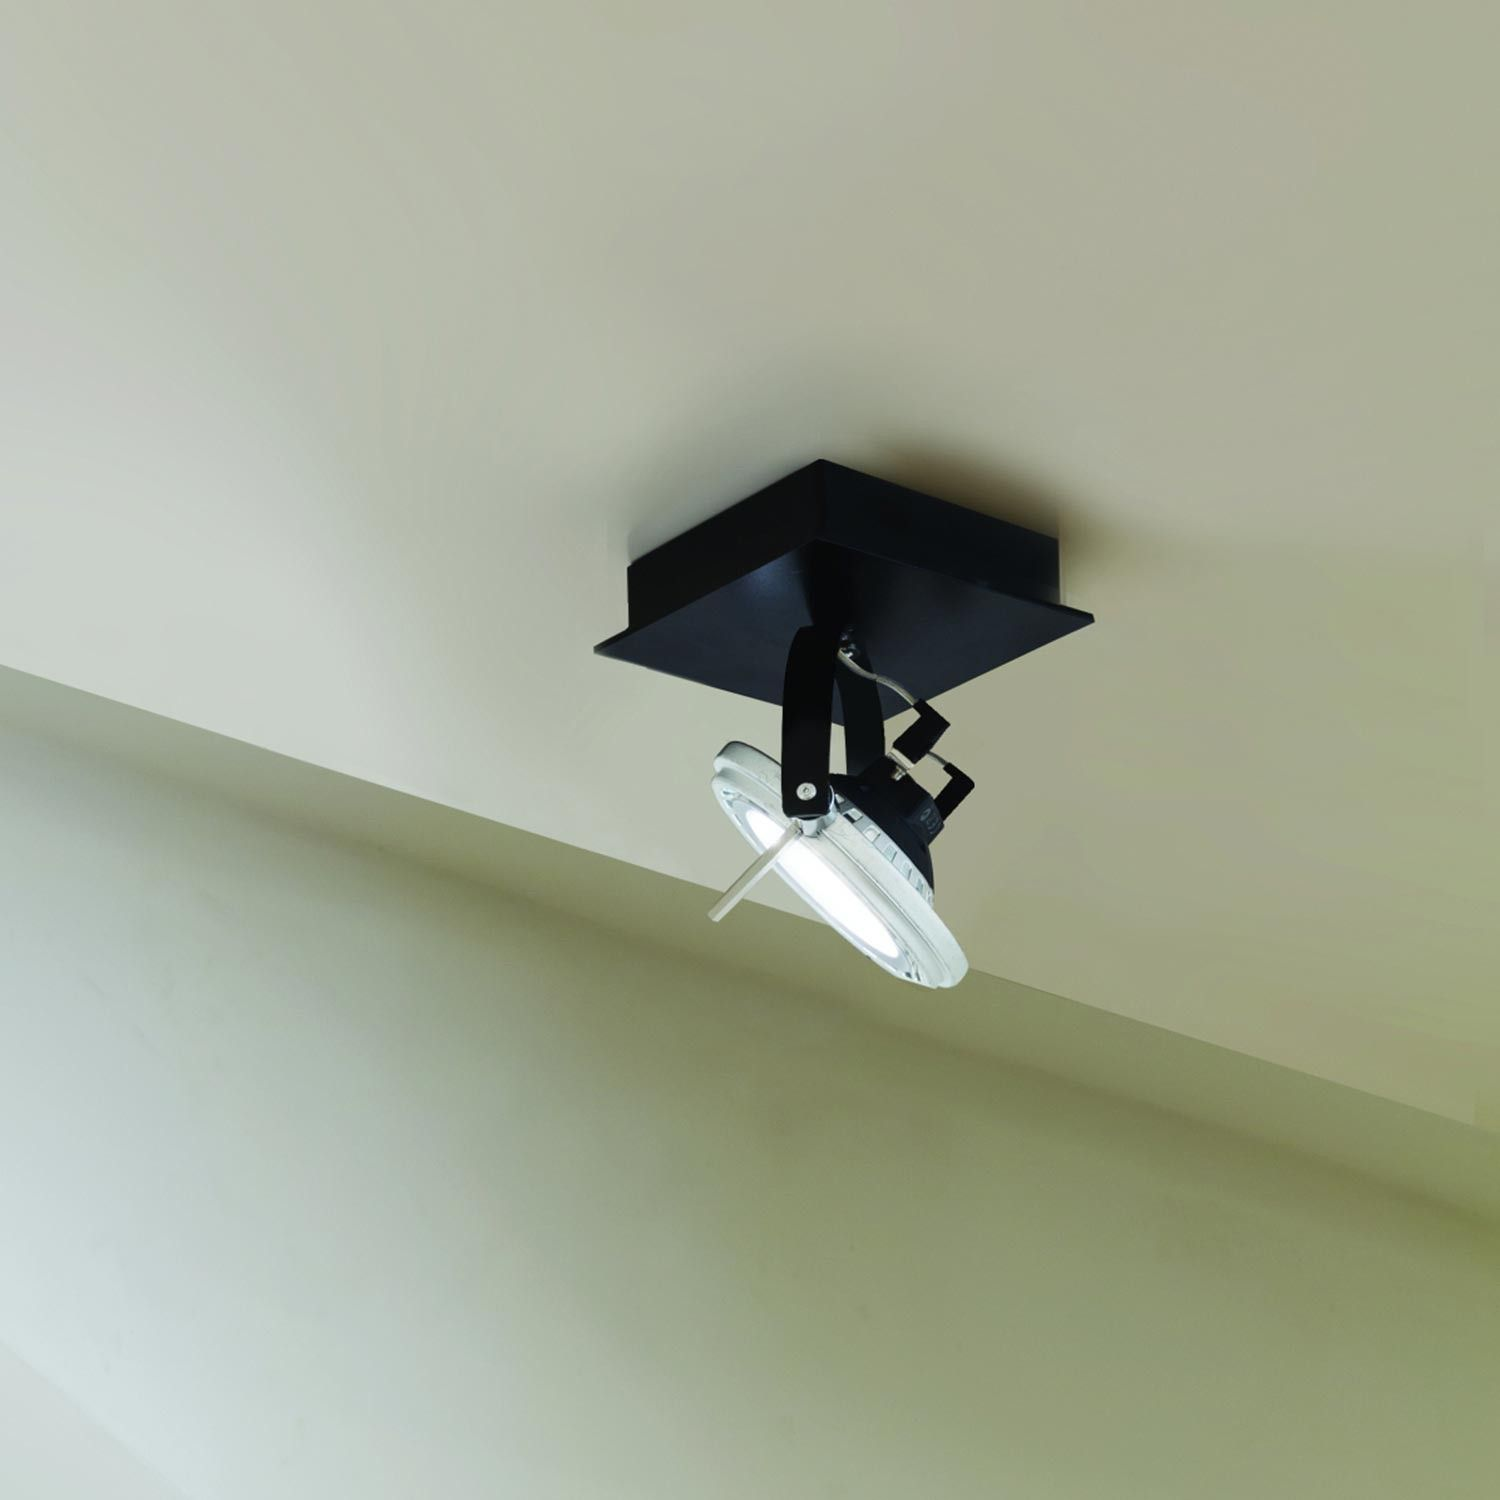 Kamerlamp Plafond Square Ceiling Wall Semi Recessed And On A 3 Phase Track Flamp